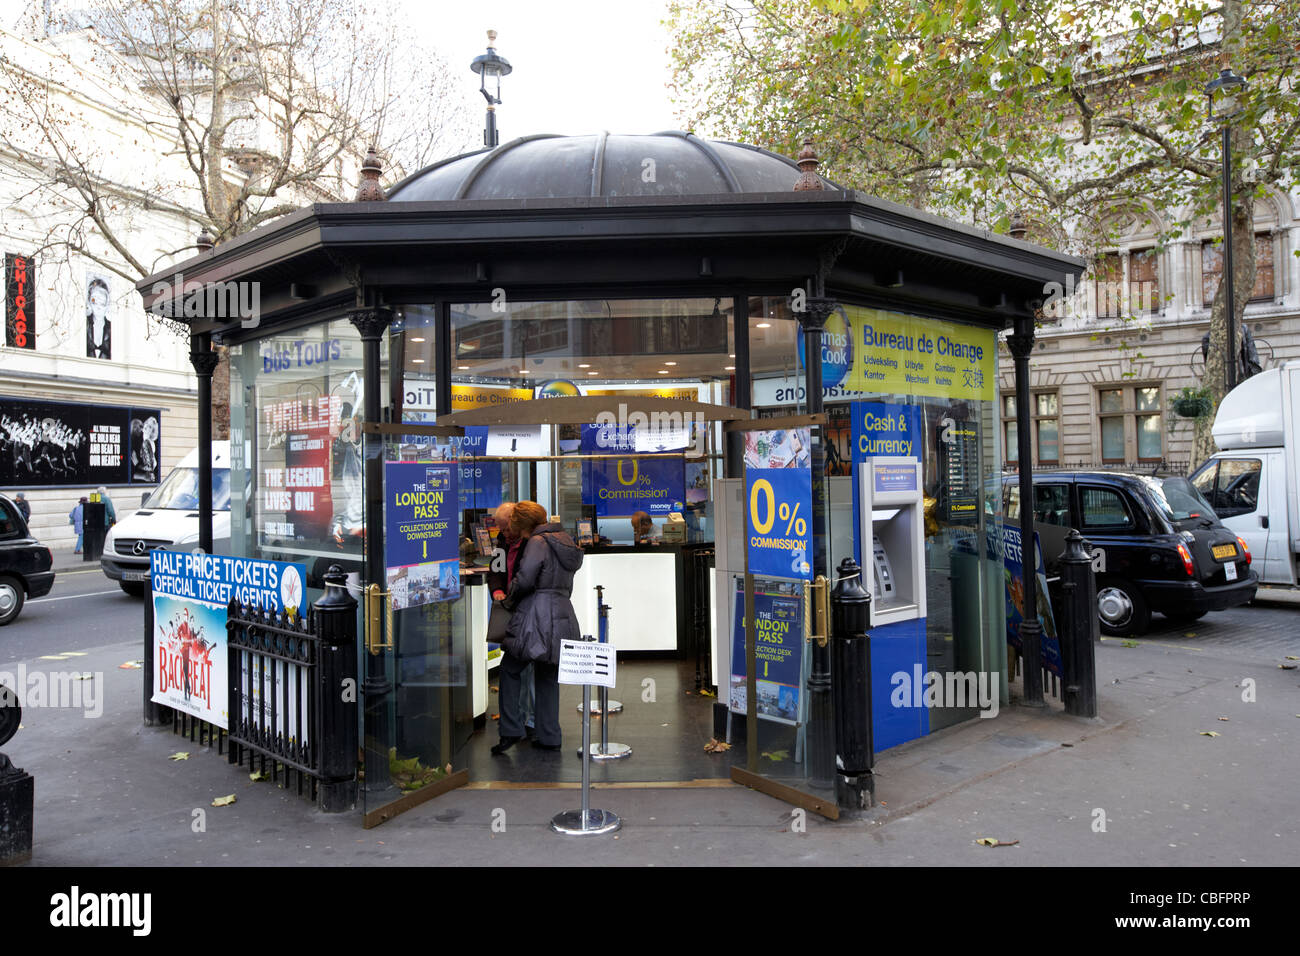 bureau de change tour bookings and theatre booking office in theatreland west end london england uk united kingdom - Stock Image